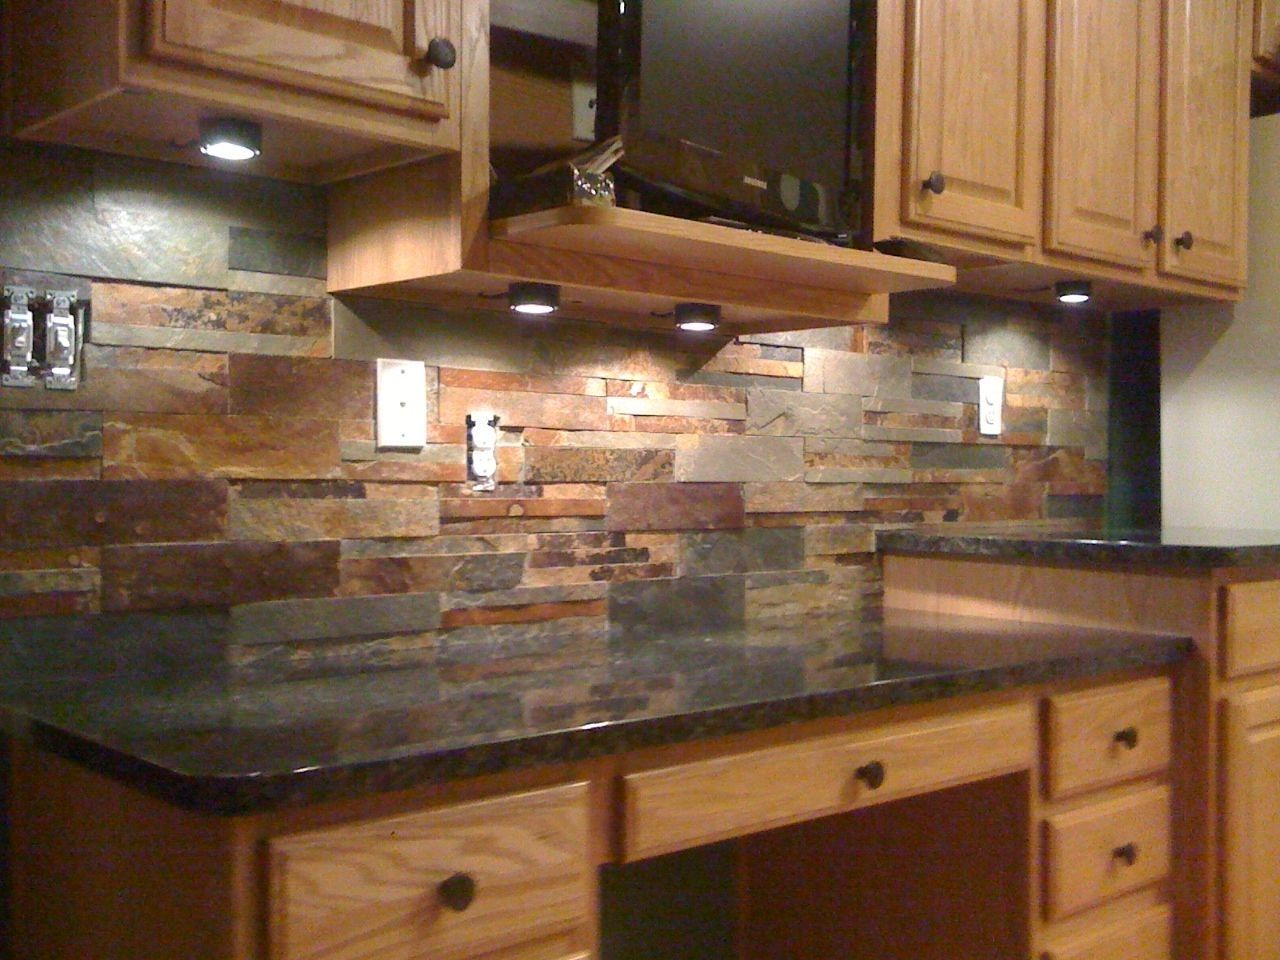 Nice Rustic Tile Backsplash Ideas Part - 2: Kitchen Limestone Backsplash Ideas For Rustic Non White Design